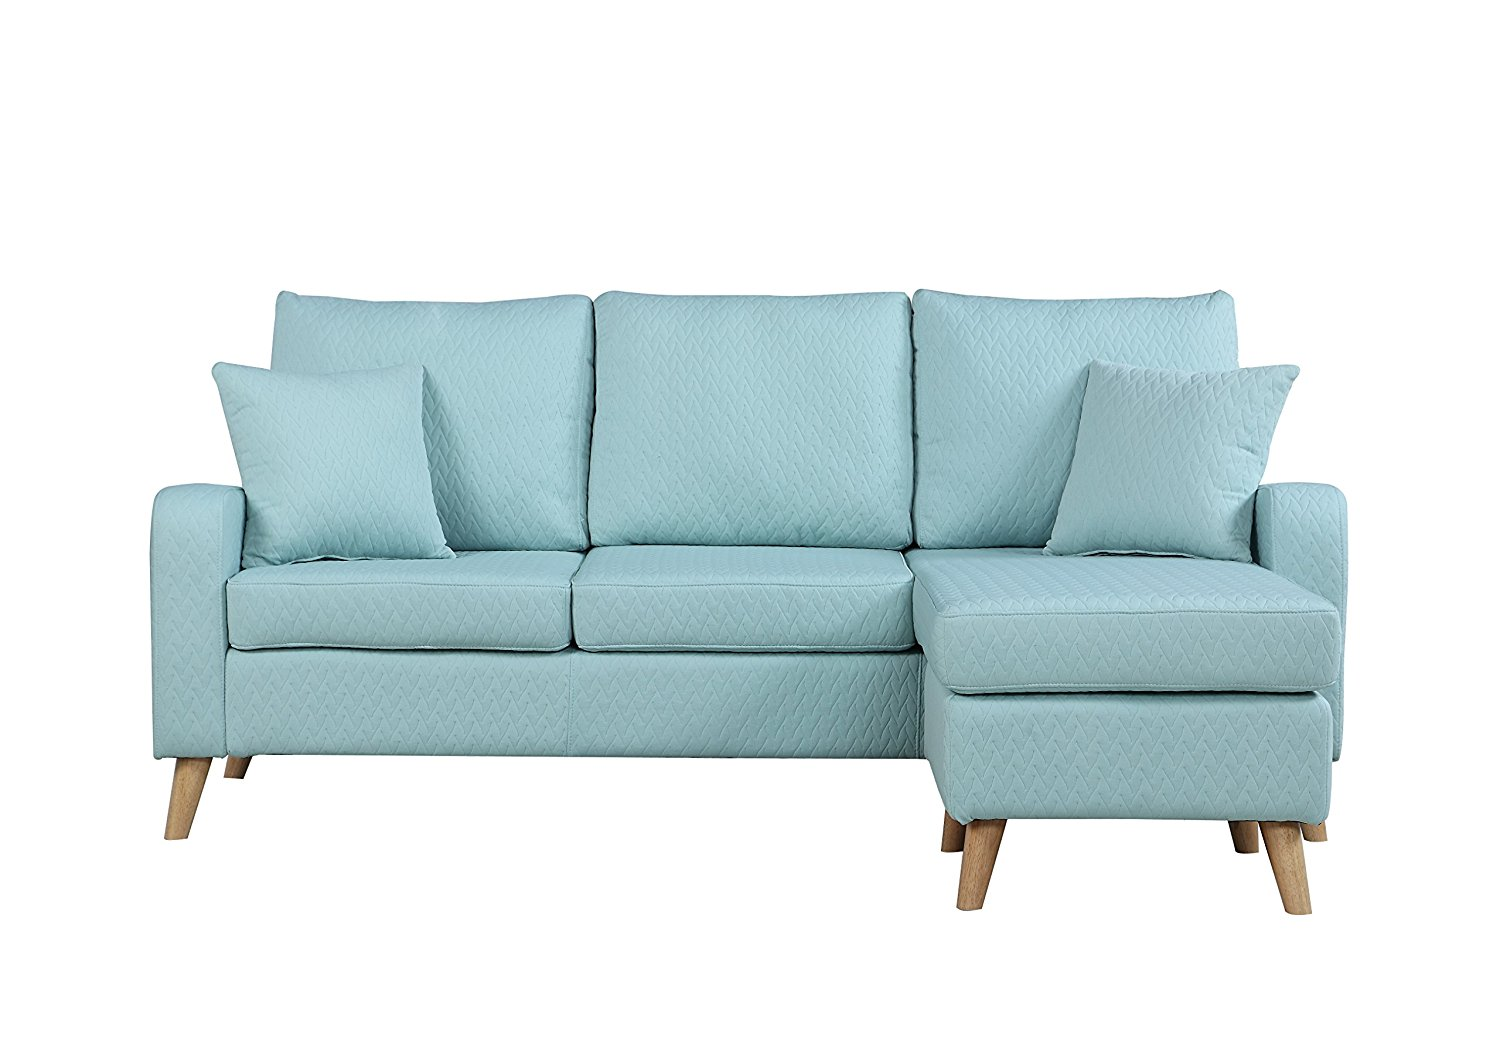 colorful sectional best rv furniture sofas or couches for motorhomes campers and